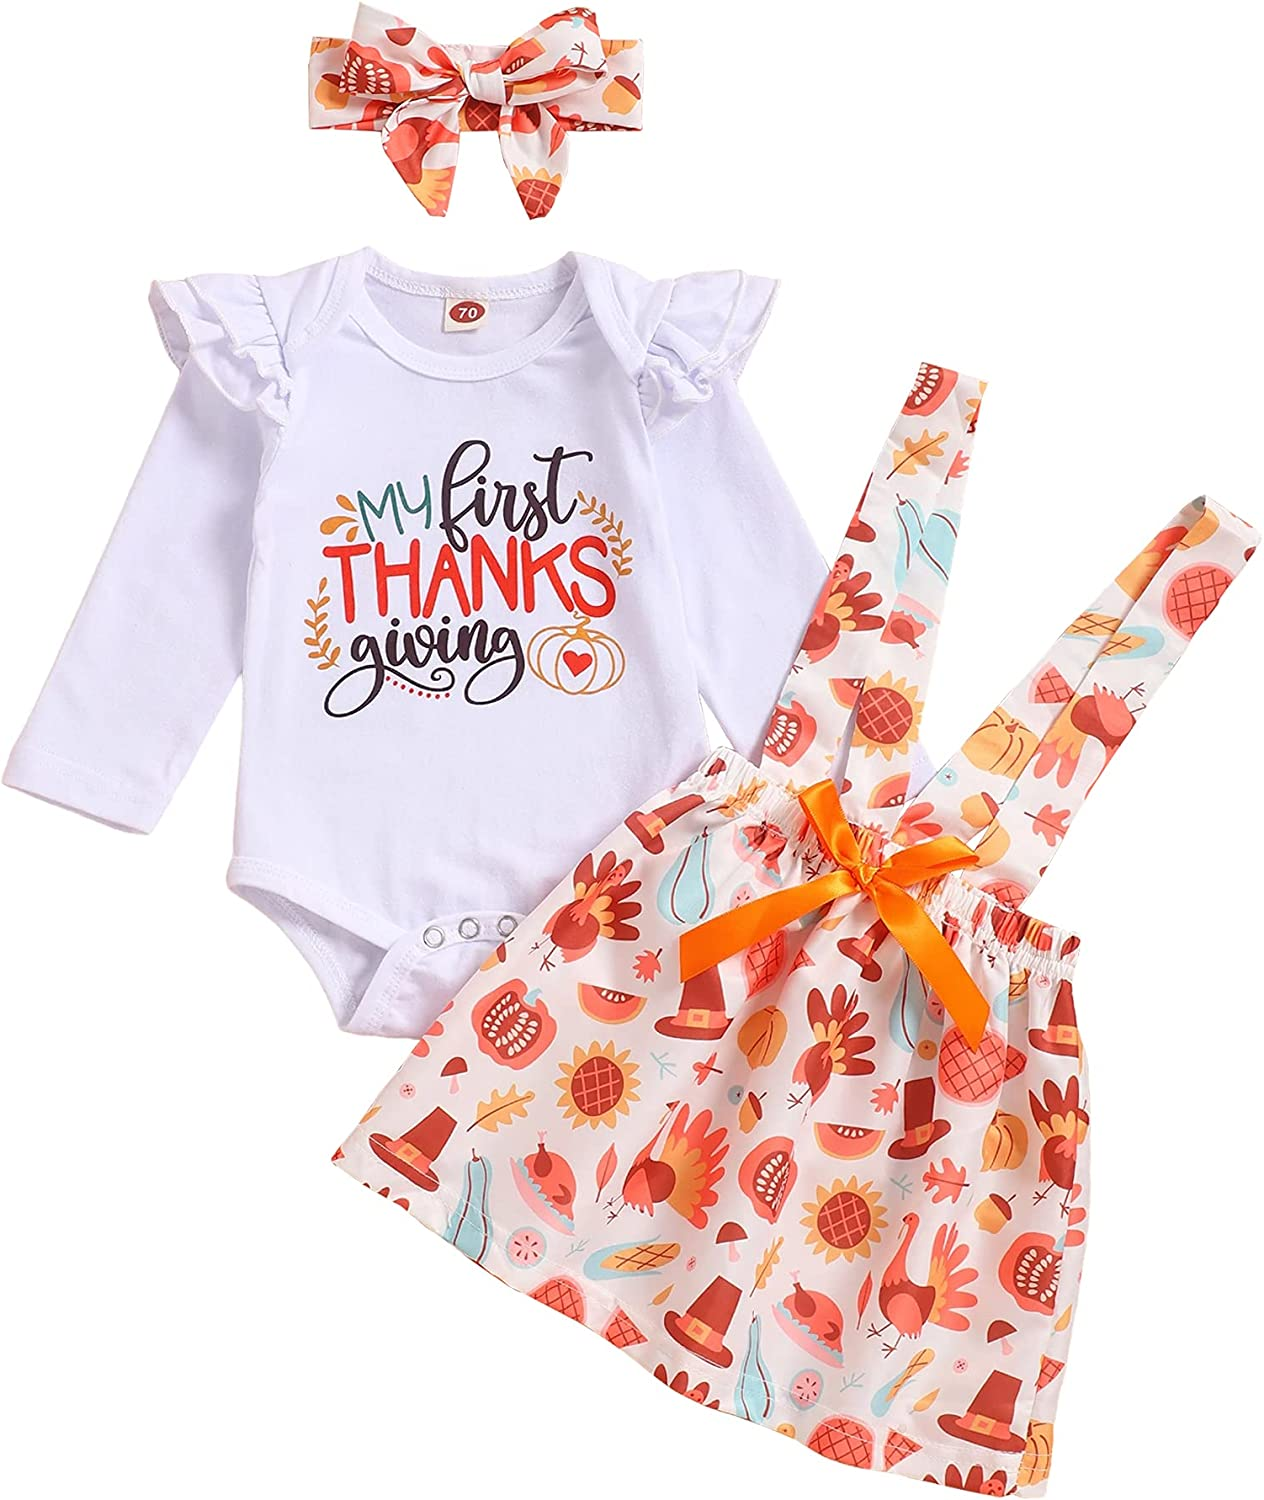 Thanksgiving Outfits Newborn Baby Girl Long Sleeve Romper+ Bow-Tied Skirt + Headband Clothes Set